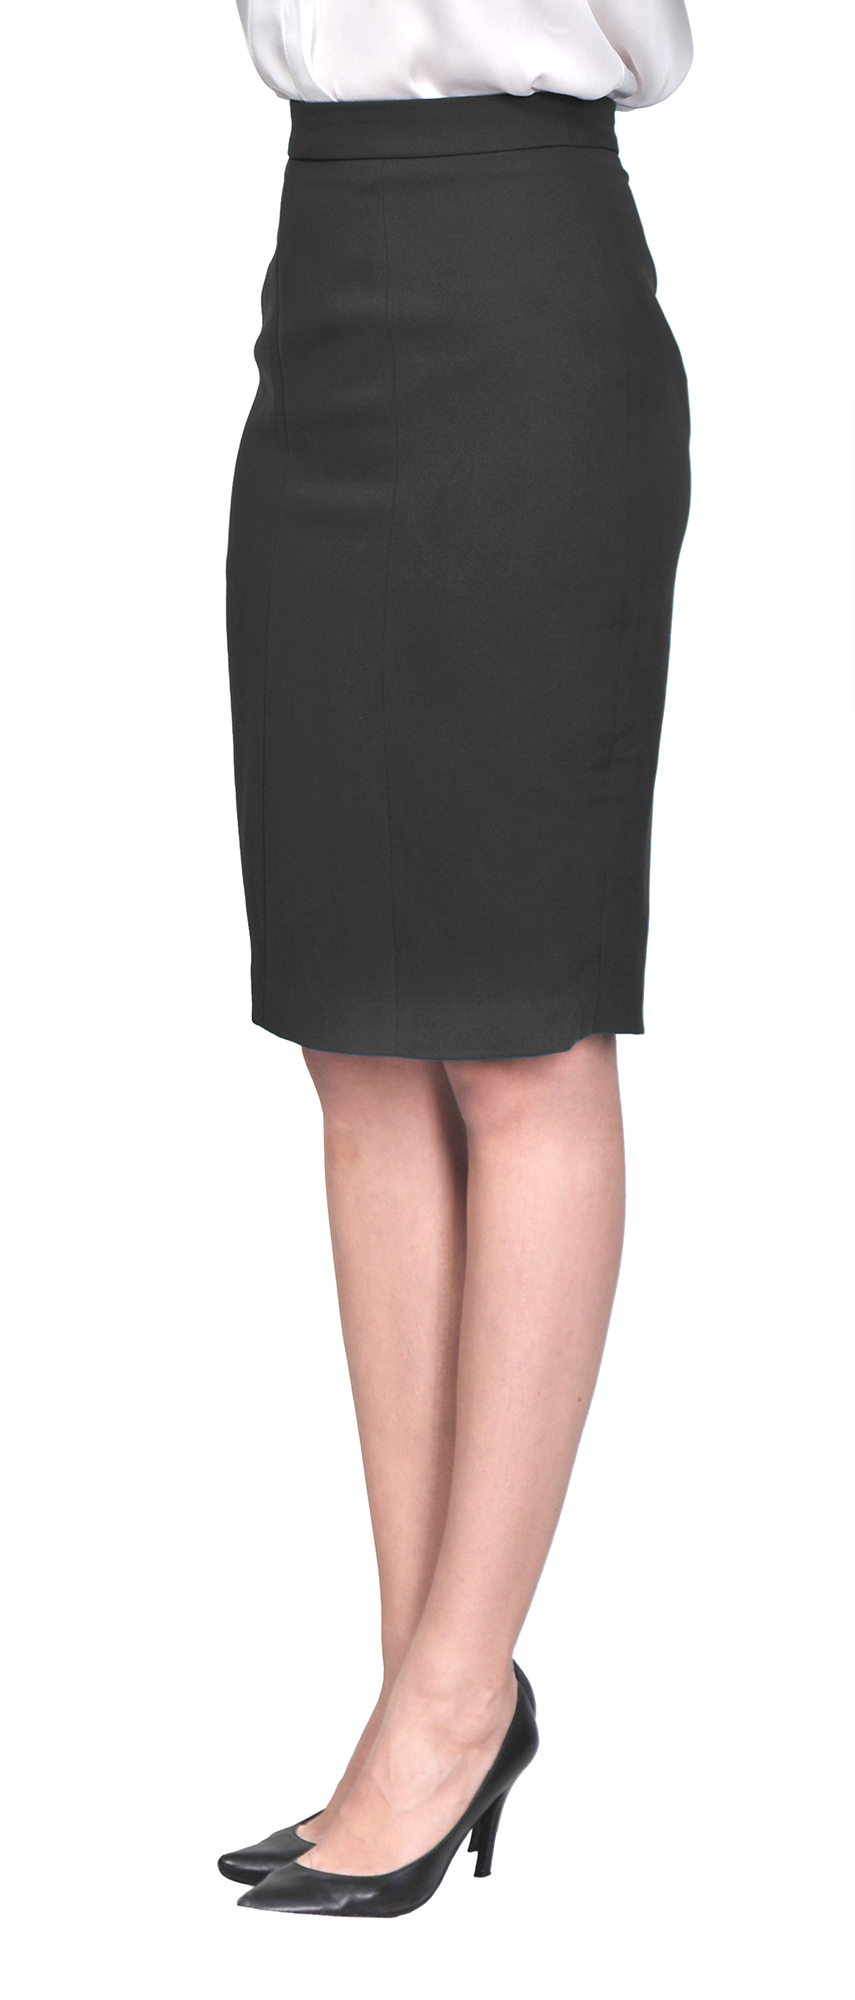 4a335e7bf27 MARYCRAFTS WOMEN S LINED PENCIL SKIRT WORK BUSINESS OFFICE KNEE ...